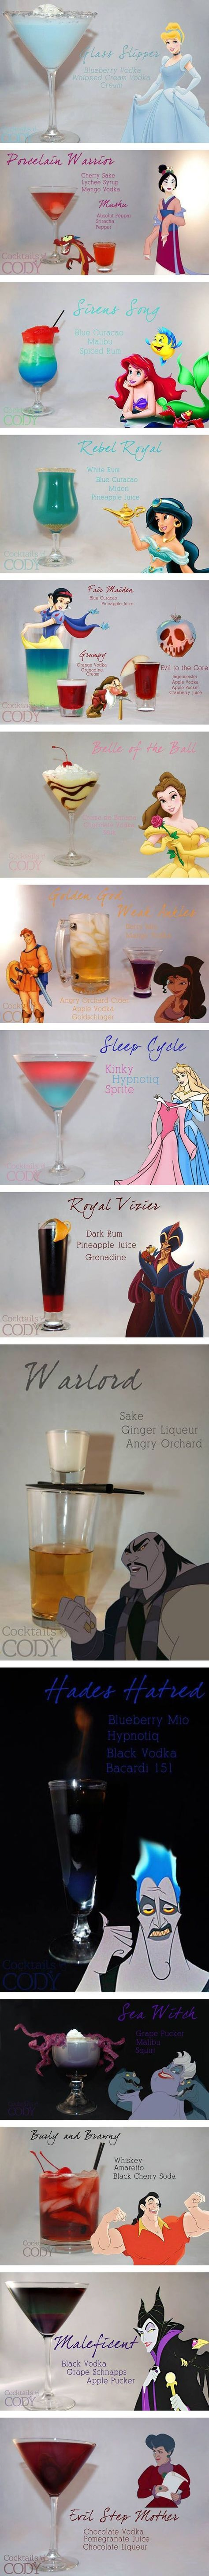 Disney Cocktails disney cocktail recipe recipes ingredients instructions drink recipes alcohol drink recipes party ideas party favors